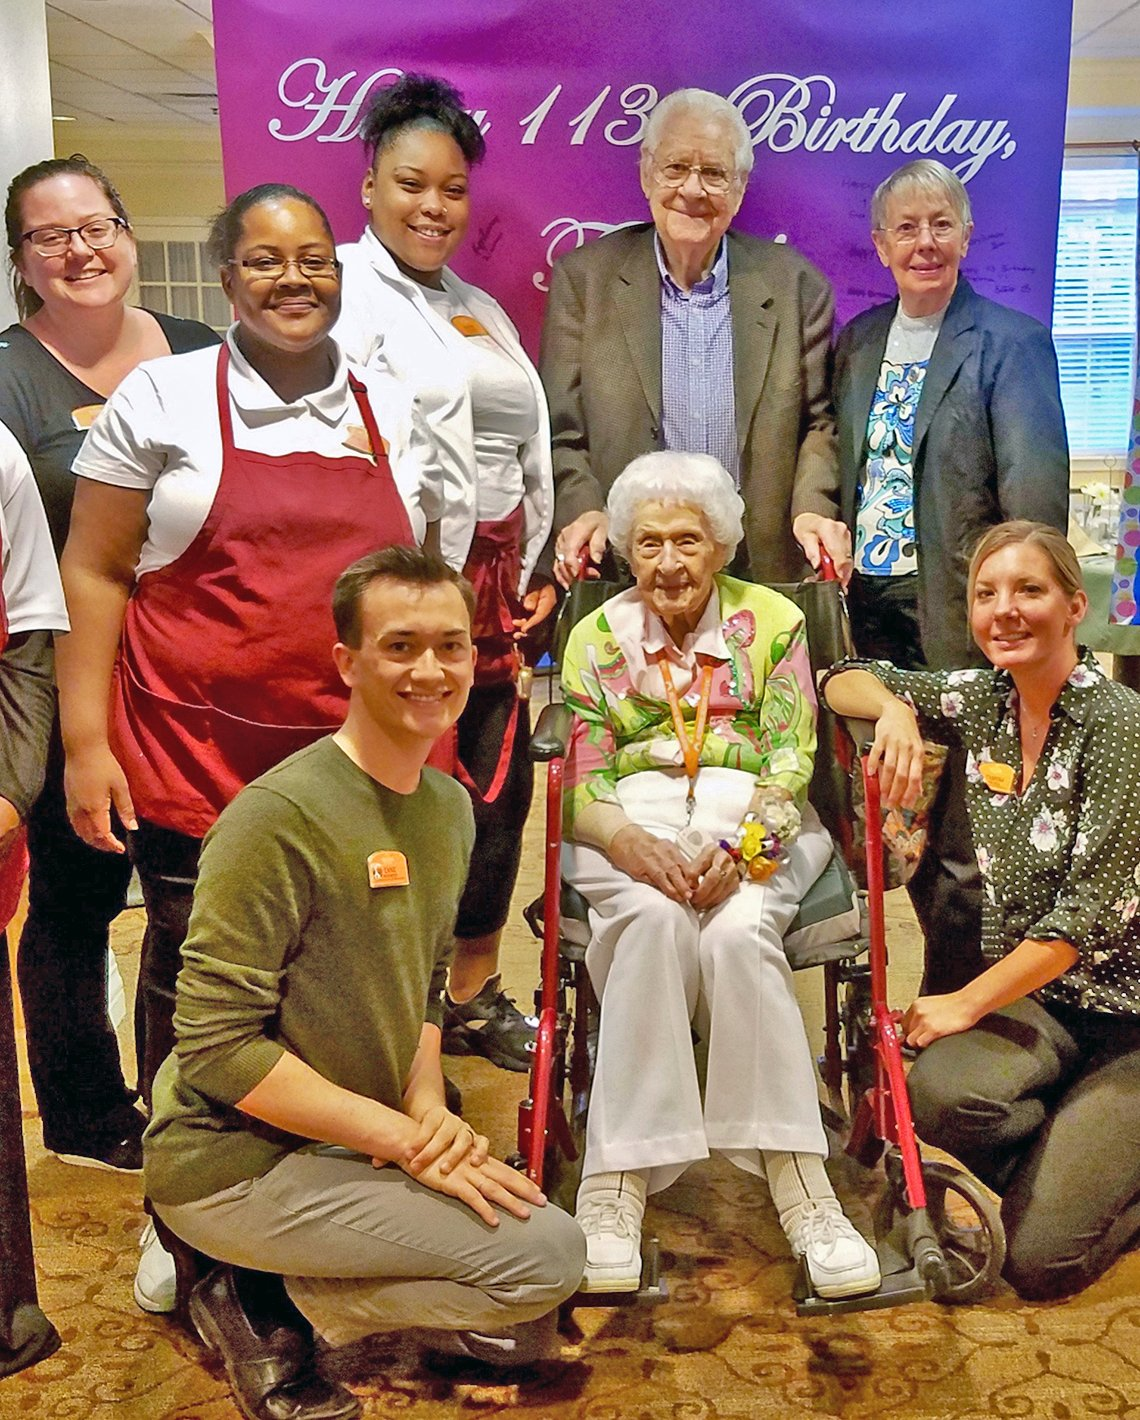 thelma sutcliffe at her one hundred and thirteenth birthday celebration surrounded my family and staff at brighton gardens senior living facility in omaha nebraska